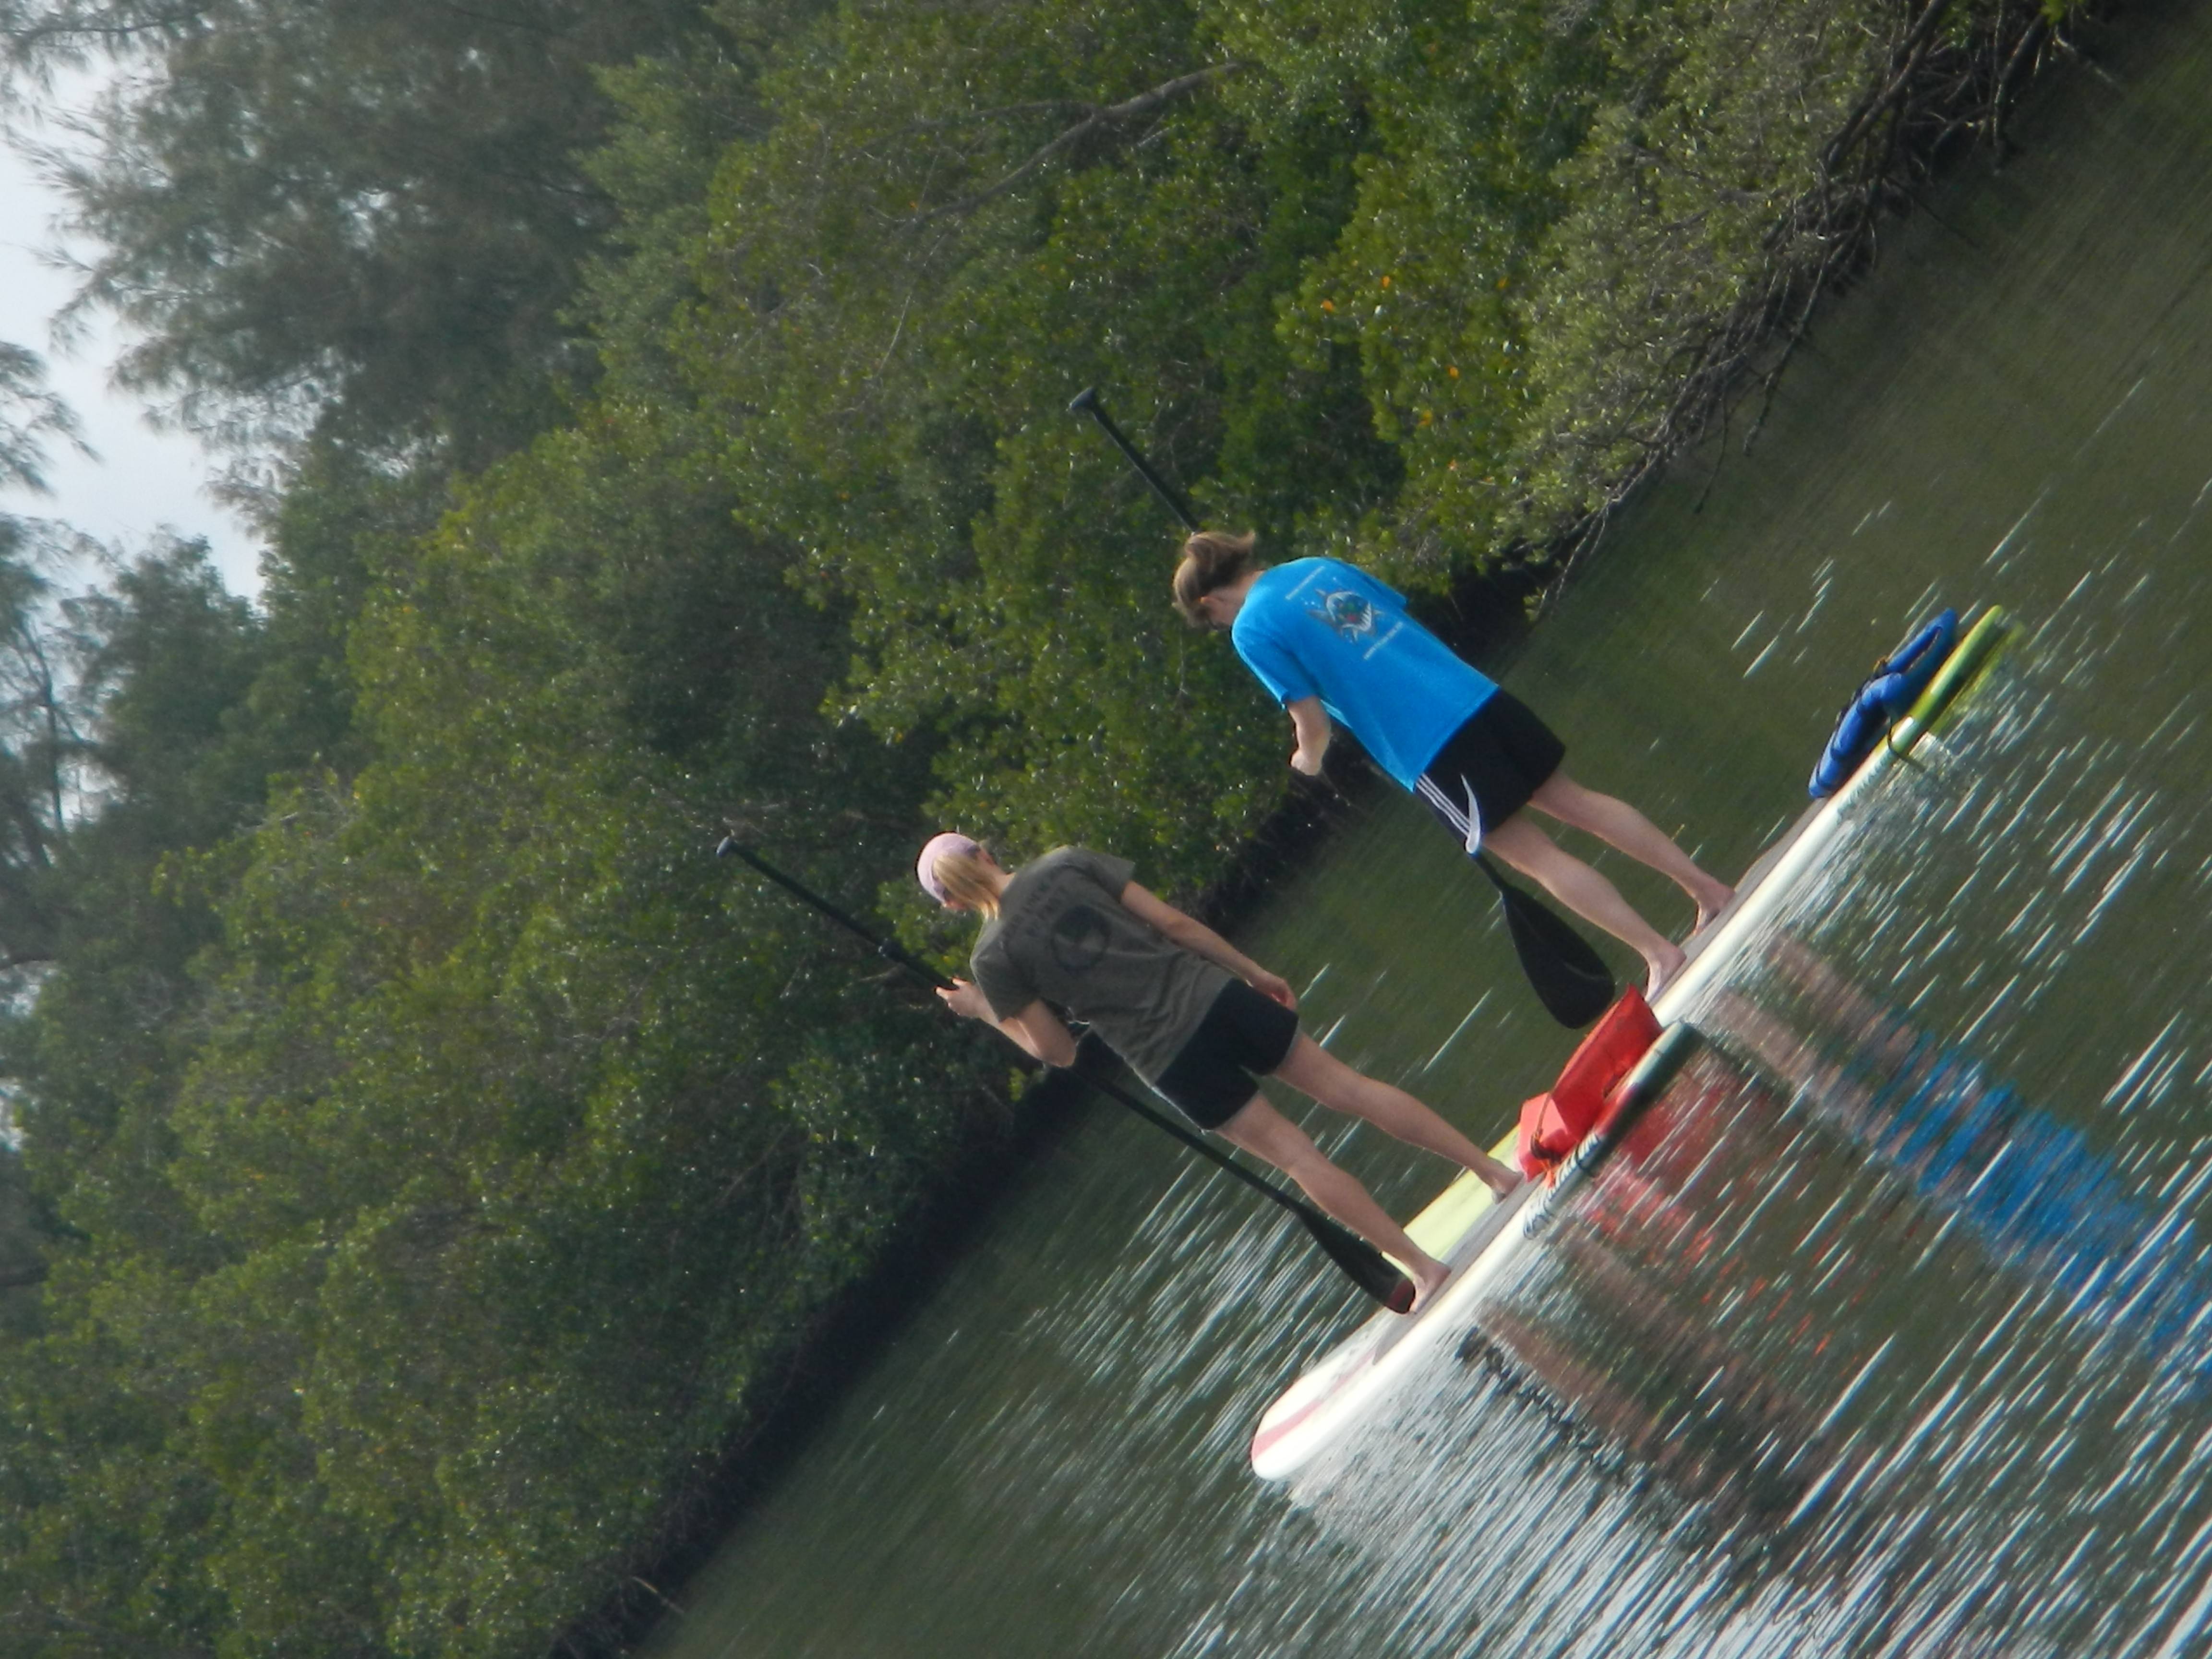 Stand Up Paddle Boarding Adventure Fun Tour With Supecoadventures Minutes From Cocoa Beach Vero And